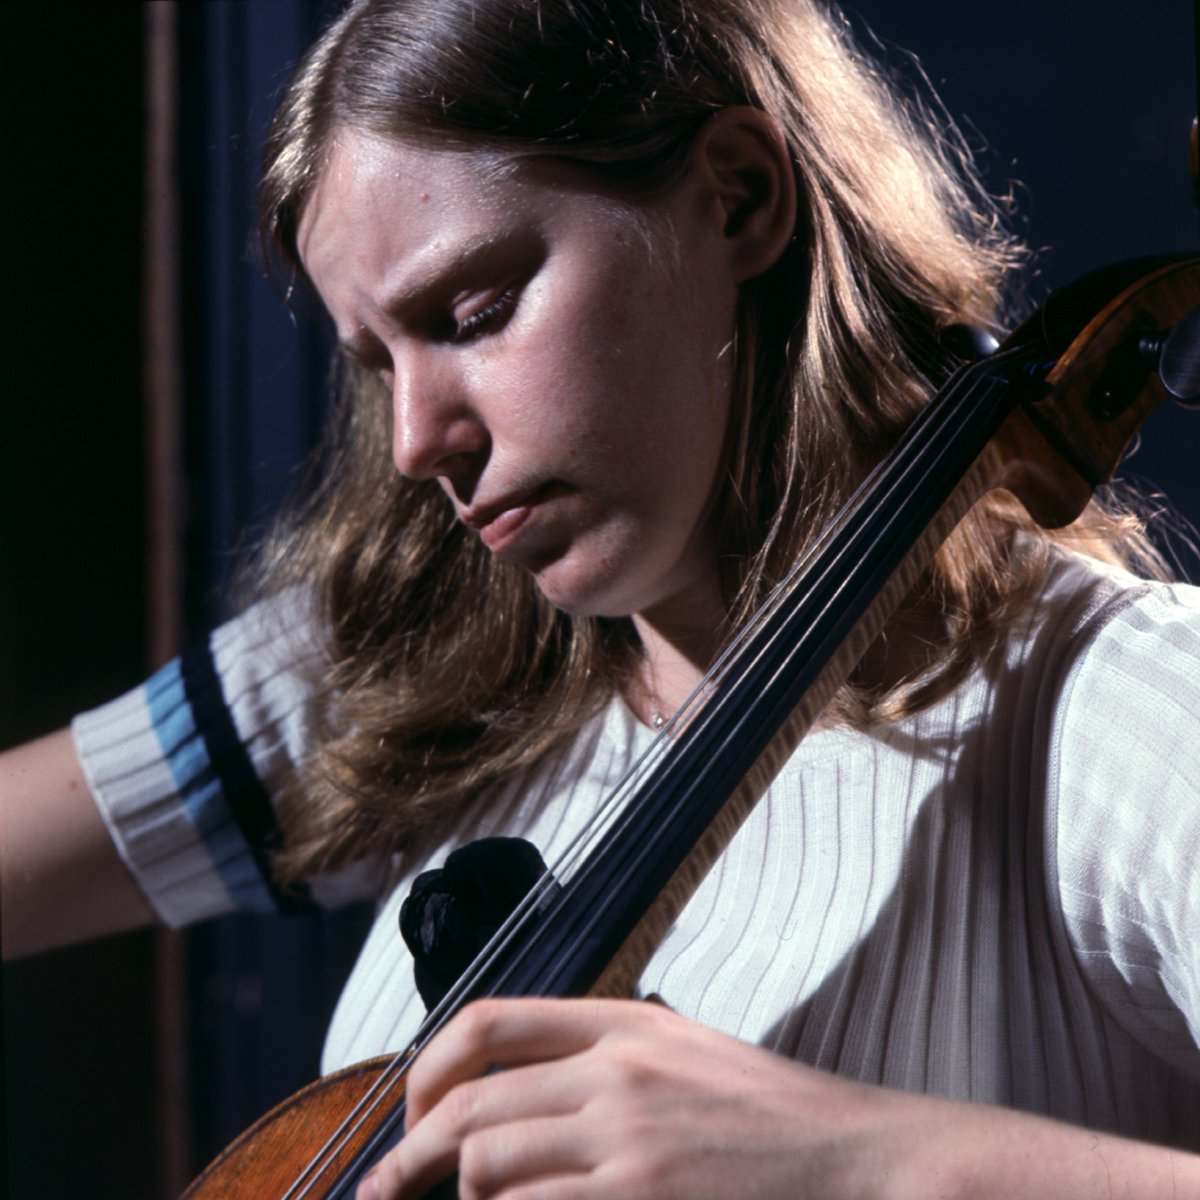 #OnThisDay in 1945, Jacqueline du Pré was born in Oxford 🎈  Rediscover her internationally acclaimed 1965 recording of Elgar's masterpiece Cello Concerto, with Sir John Barbirolli and the @londonsymphony: